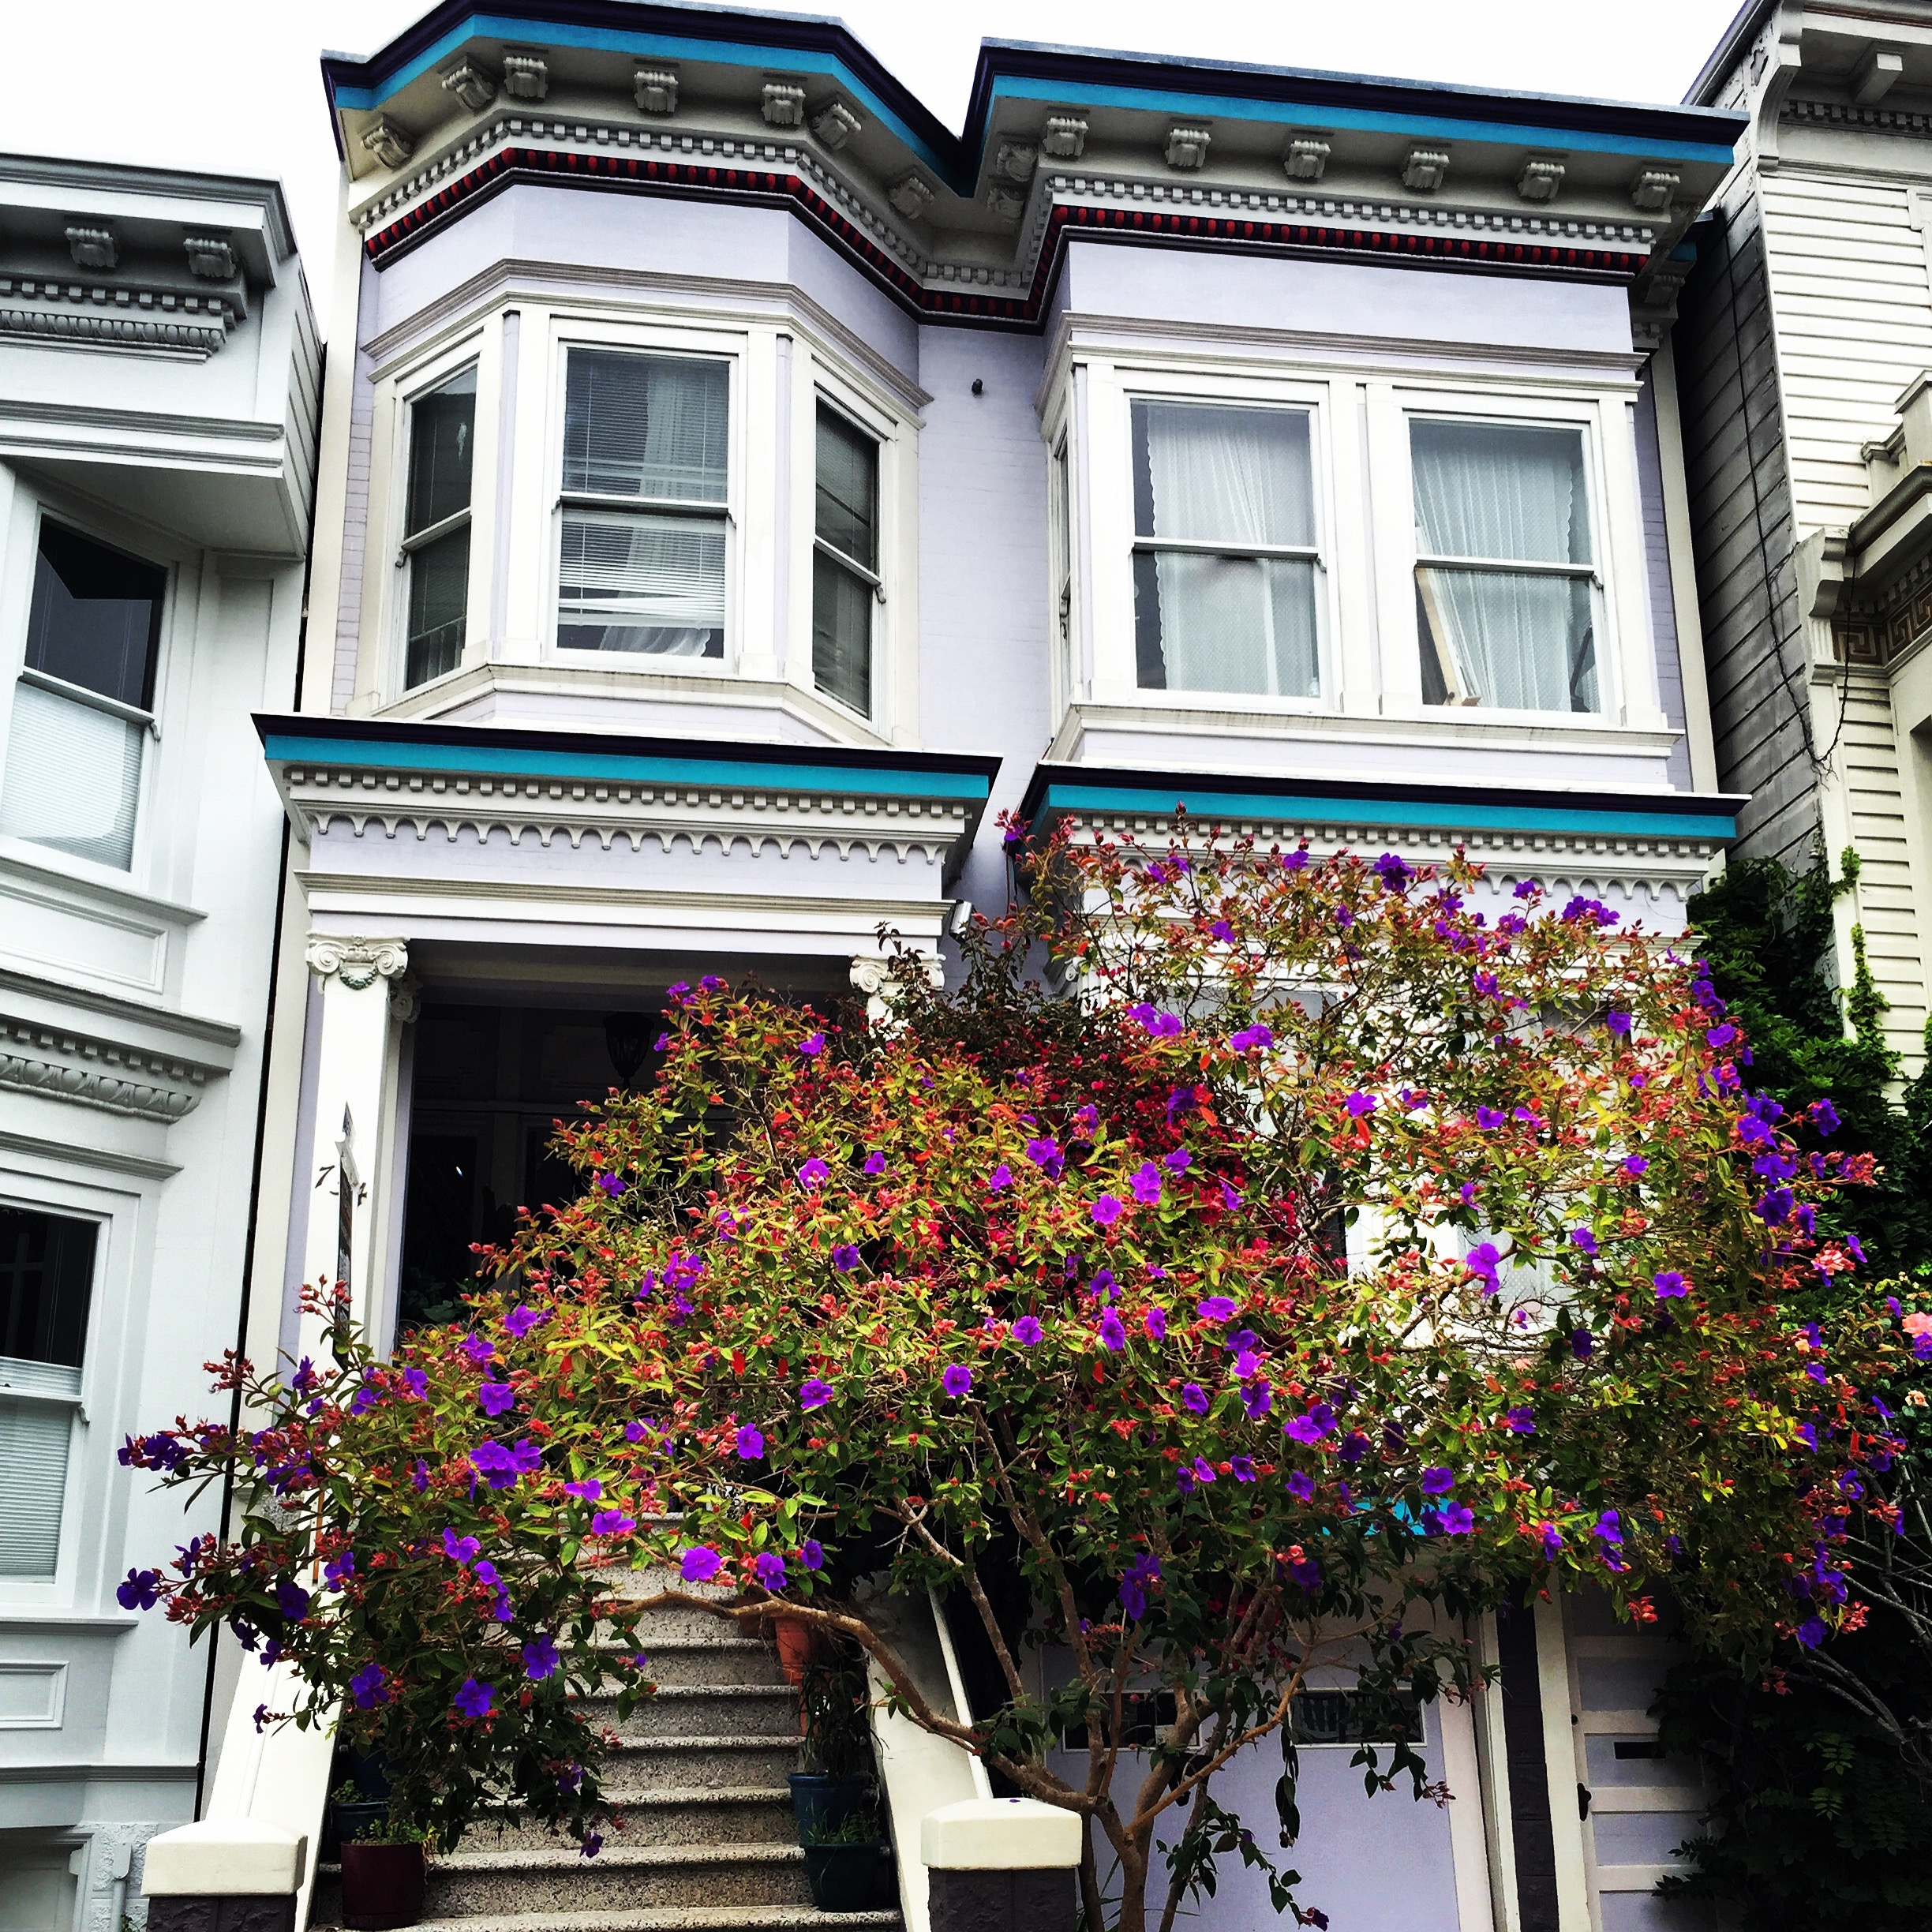 SOLD | Victorian Single Family in Cole Valley / Haight Ashbury | $2,250,000 Off Market